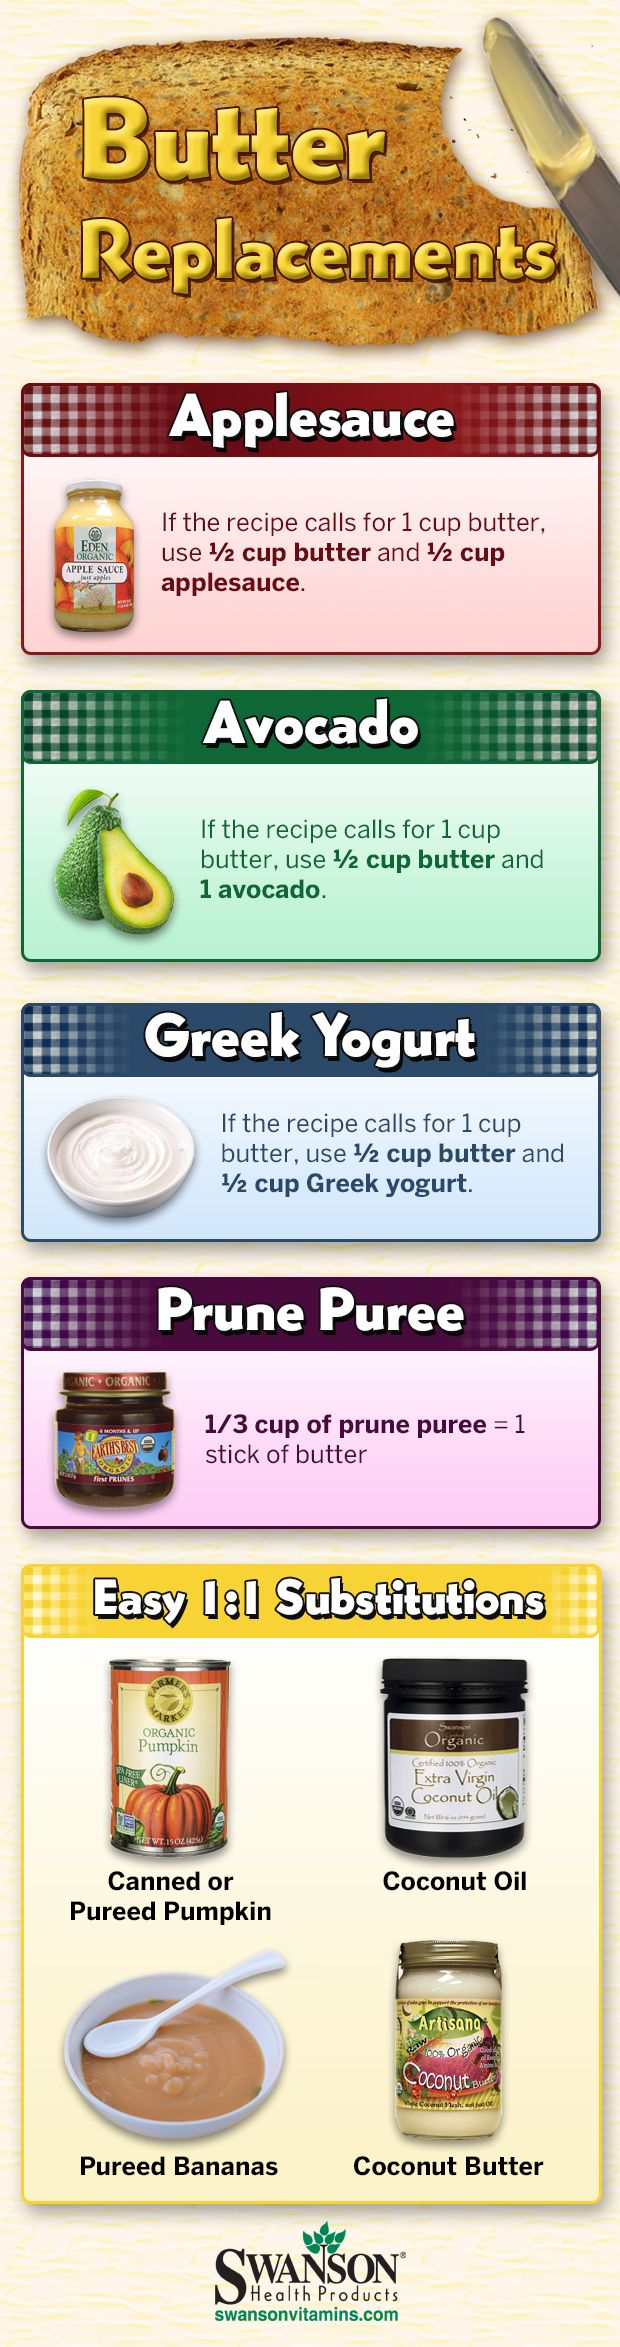 Top Butter Replacements (INFOGRAPHIC)